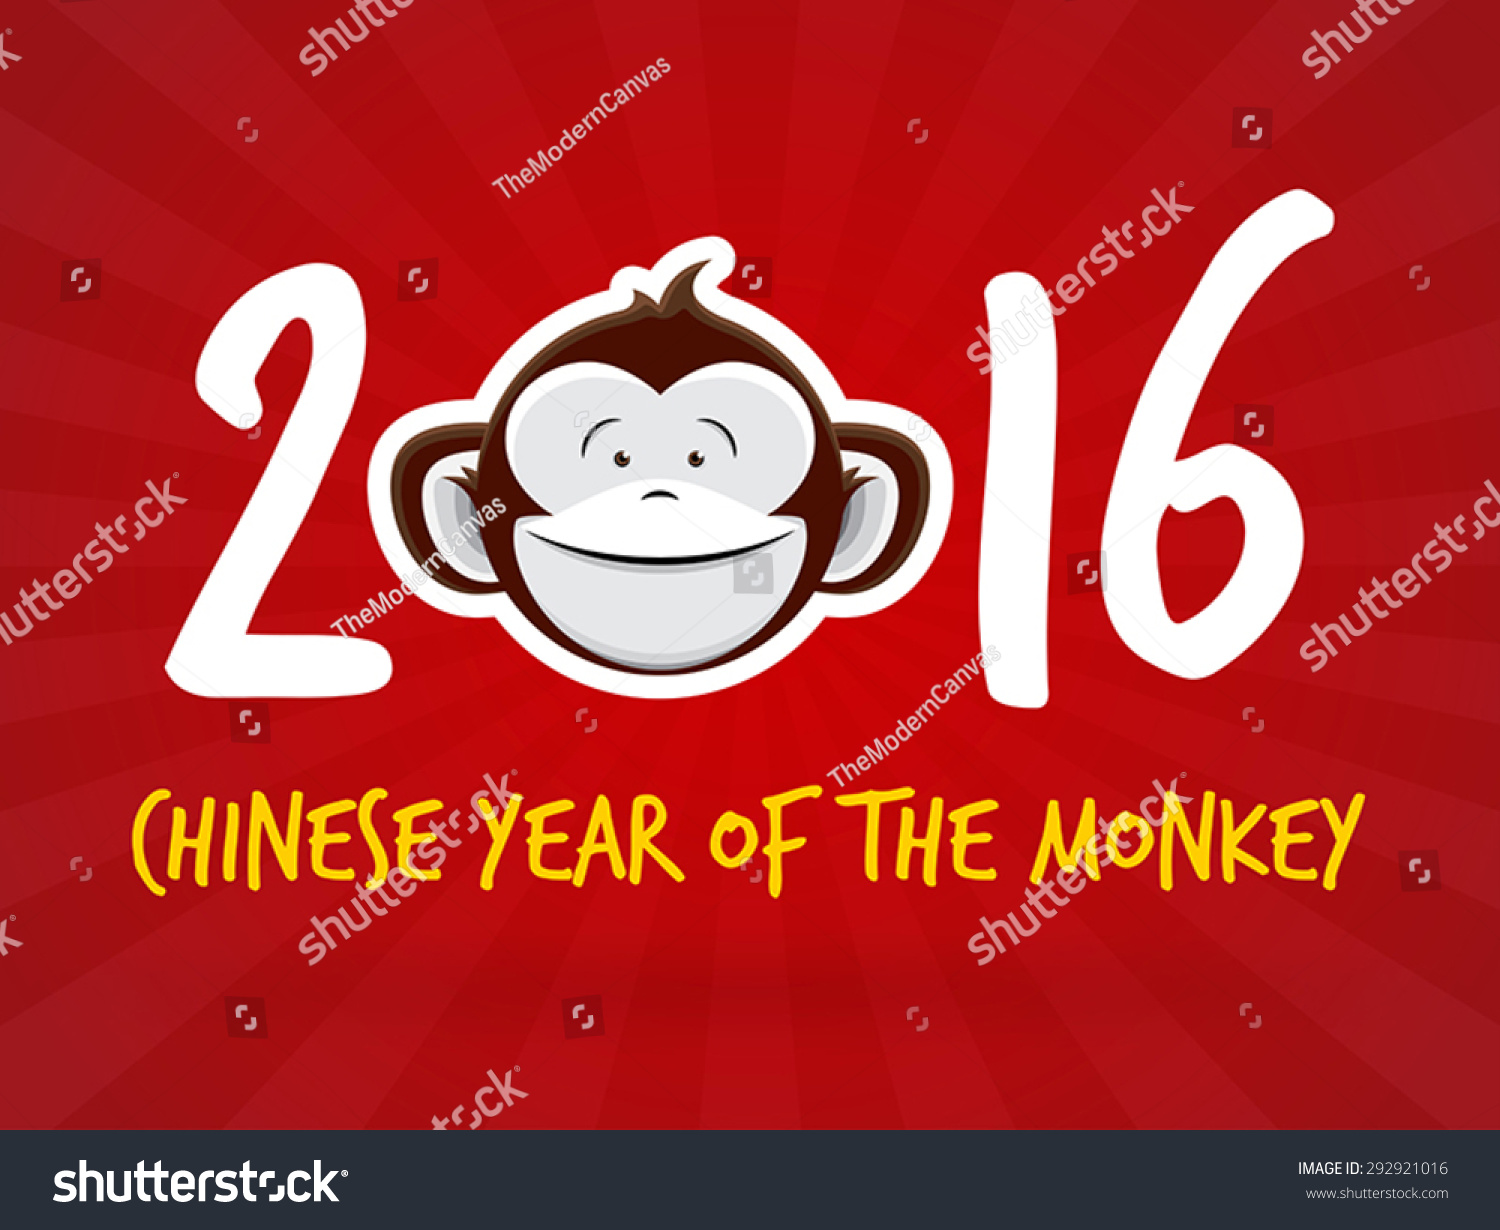 2016 chinese new year year of the monkey vector banner design - Chinese New Year Year Of The Monkey